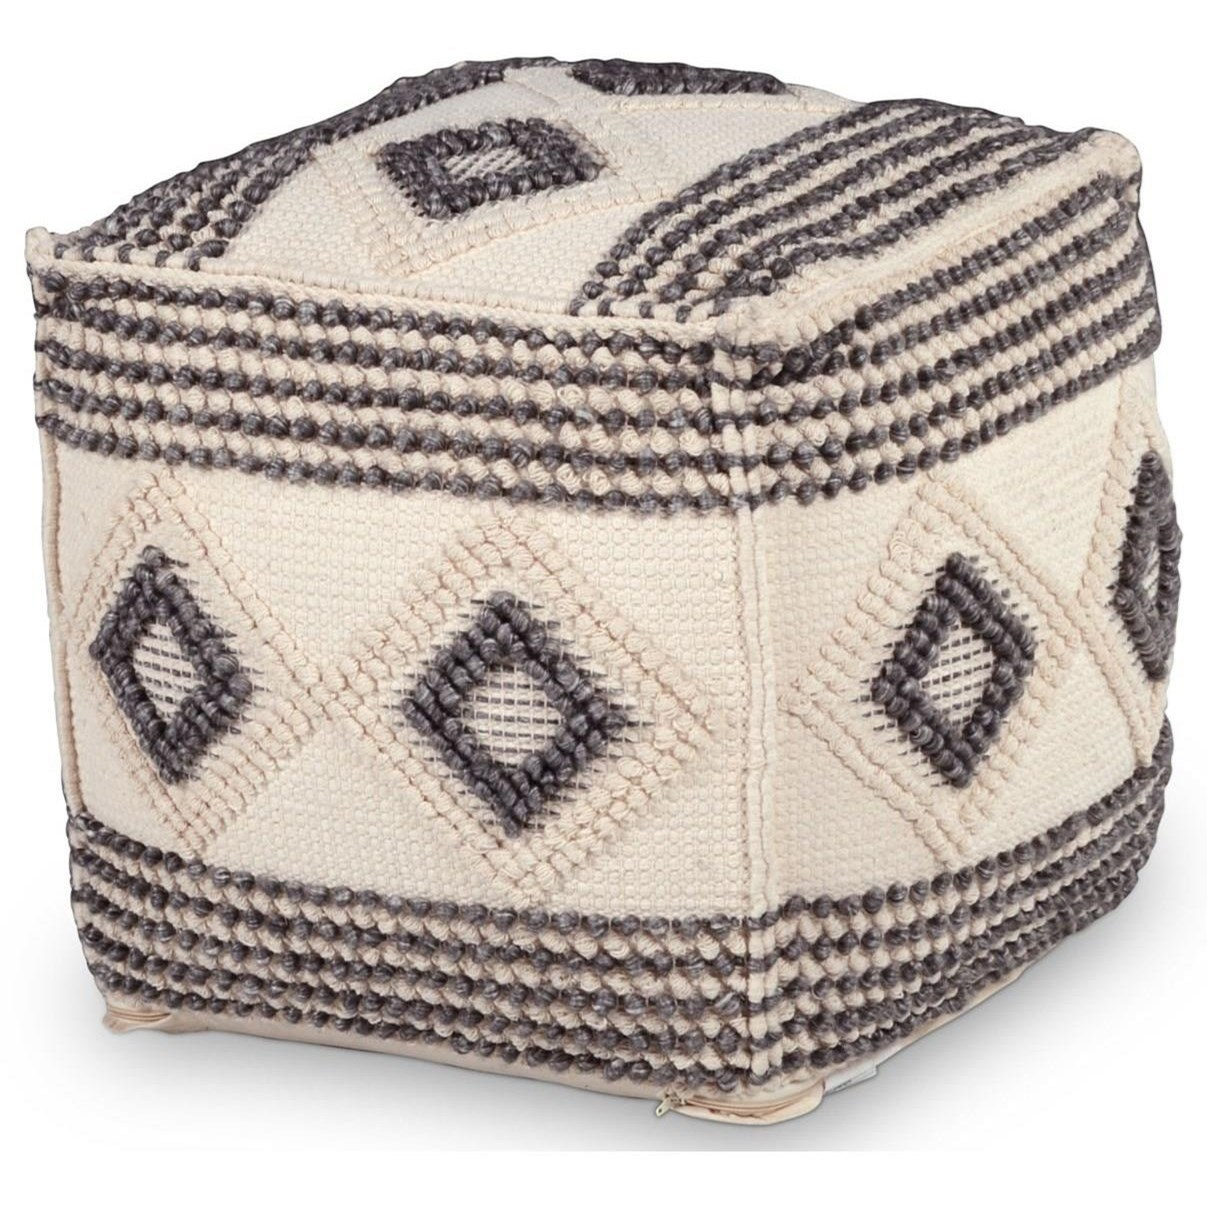 Dalia Handwoven Pouf by Steve Silver at Northeast Factory Direct